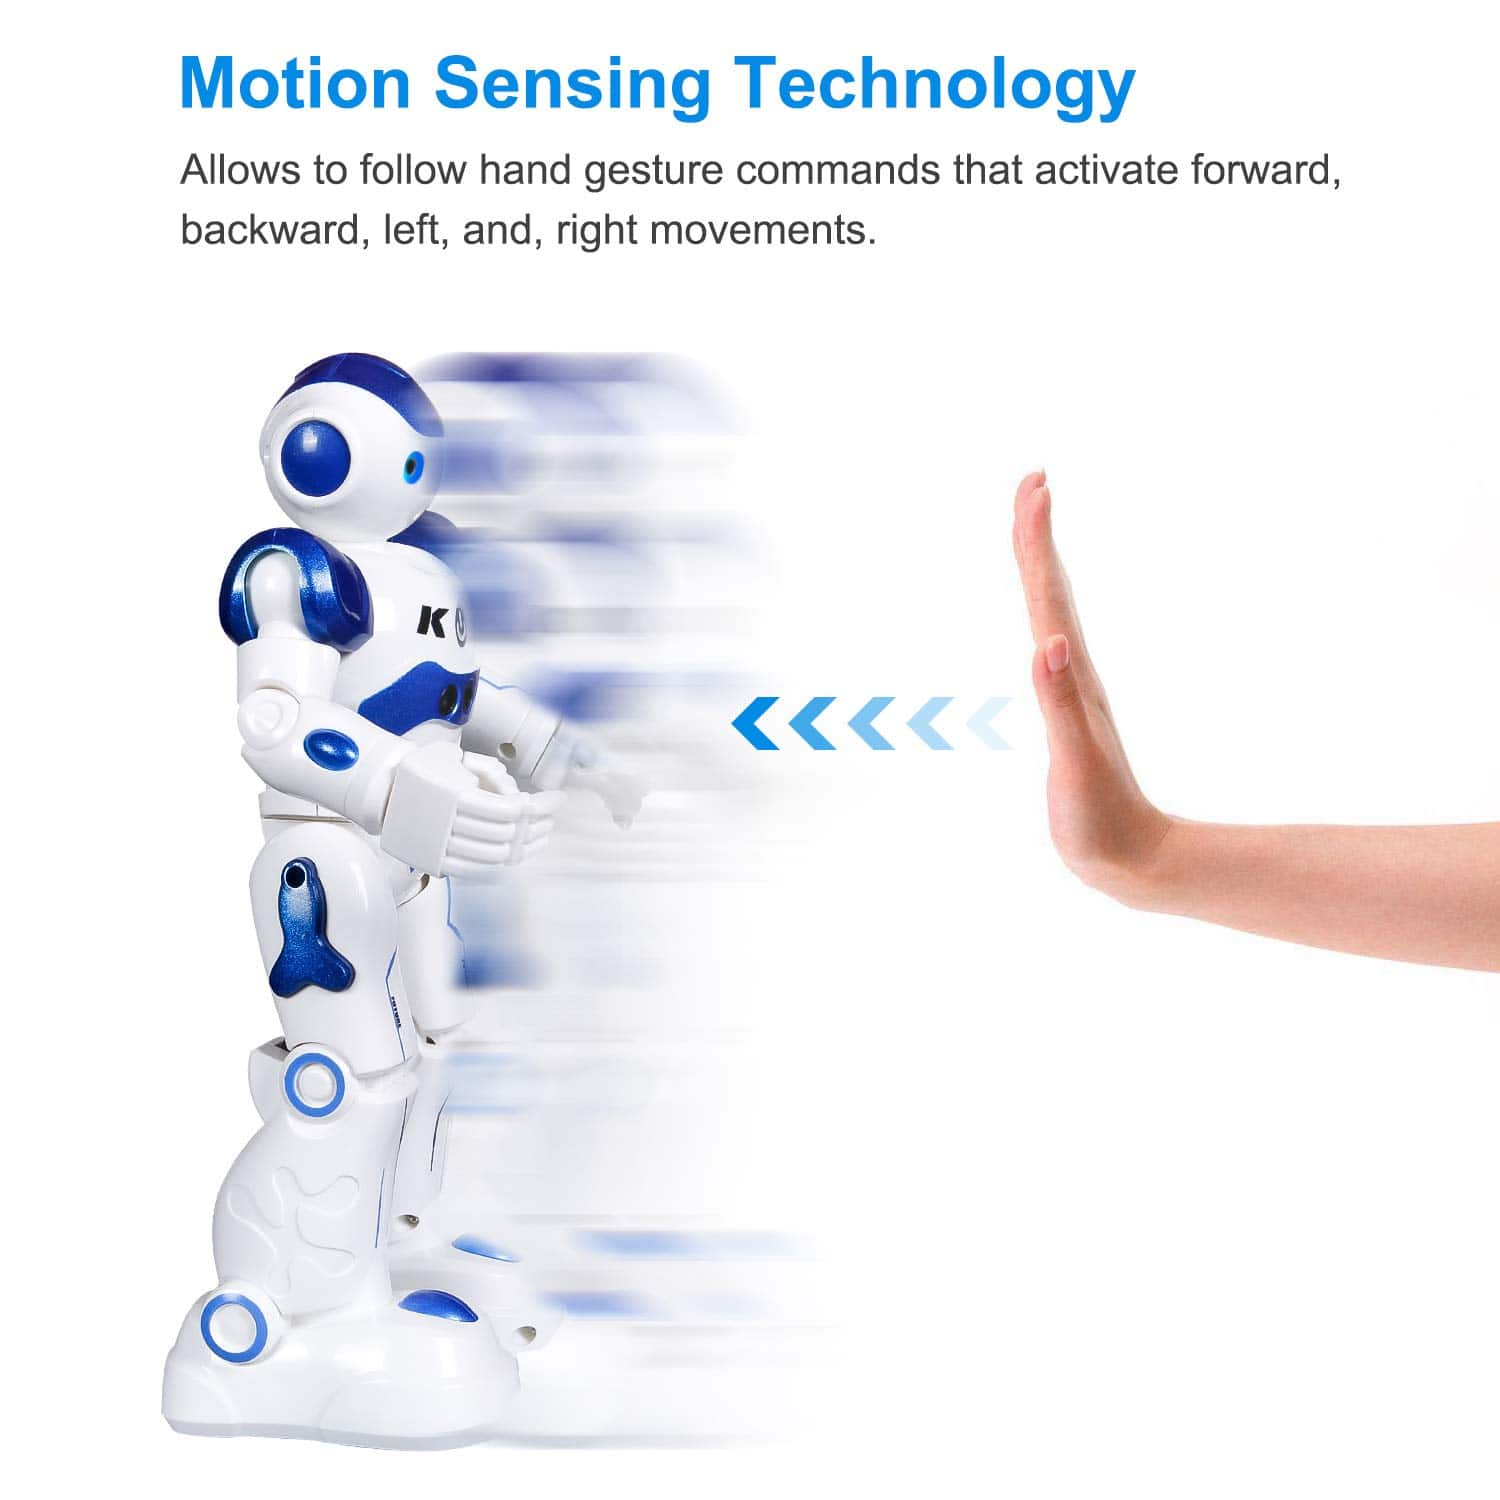 RC Robot Toy Programmable Intelligent Walk, Sing, and Dance Robot for Kids - Free shipping with Prime $21.59